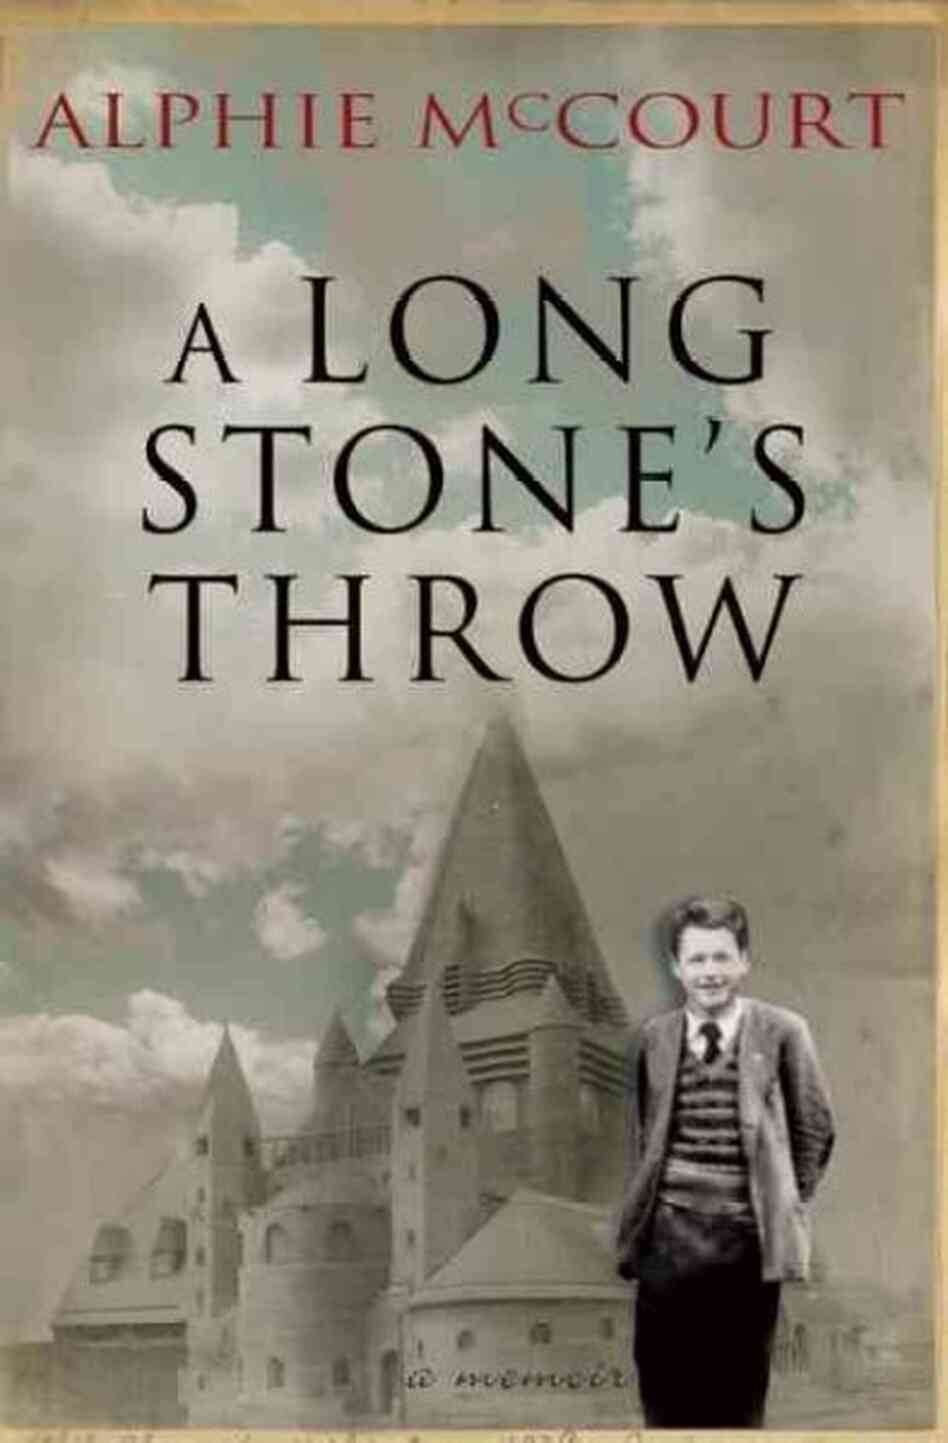 A Long Stone's Throw